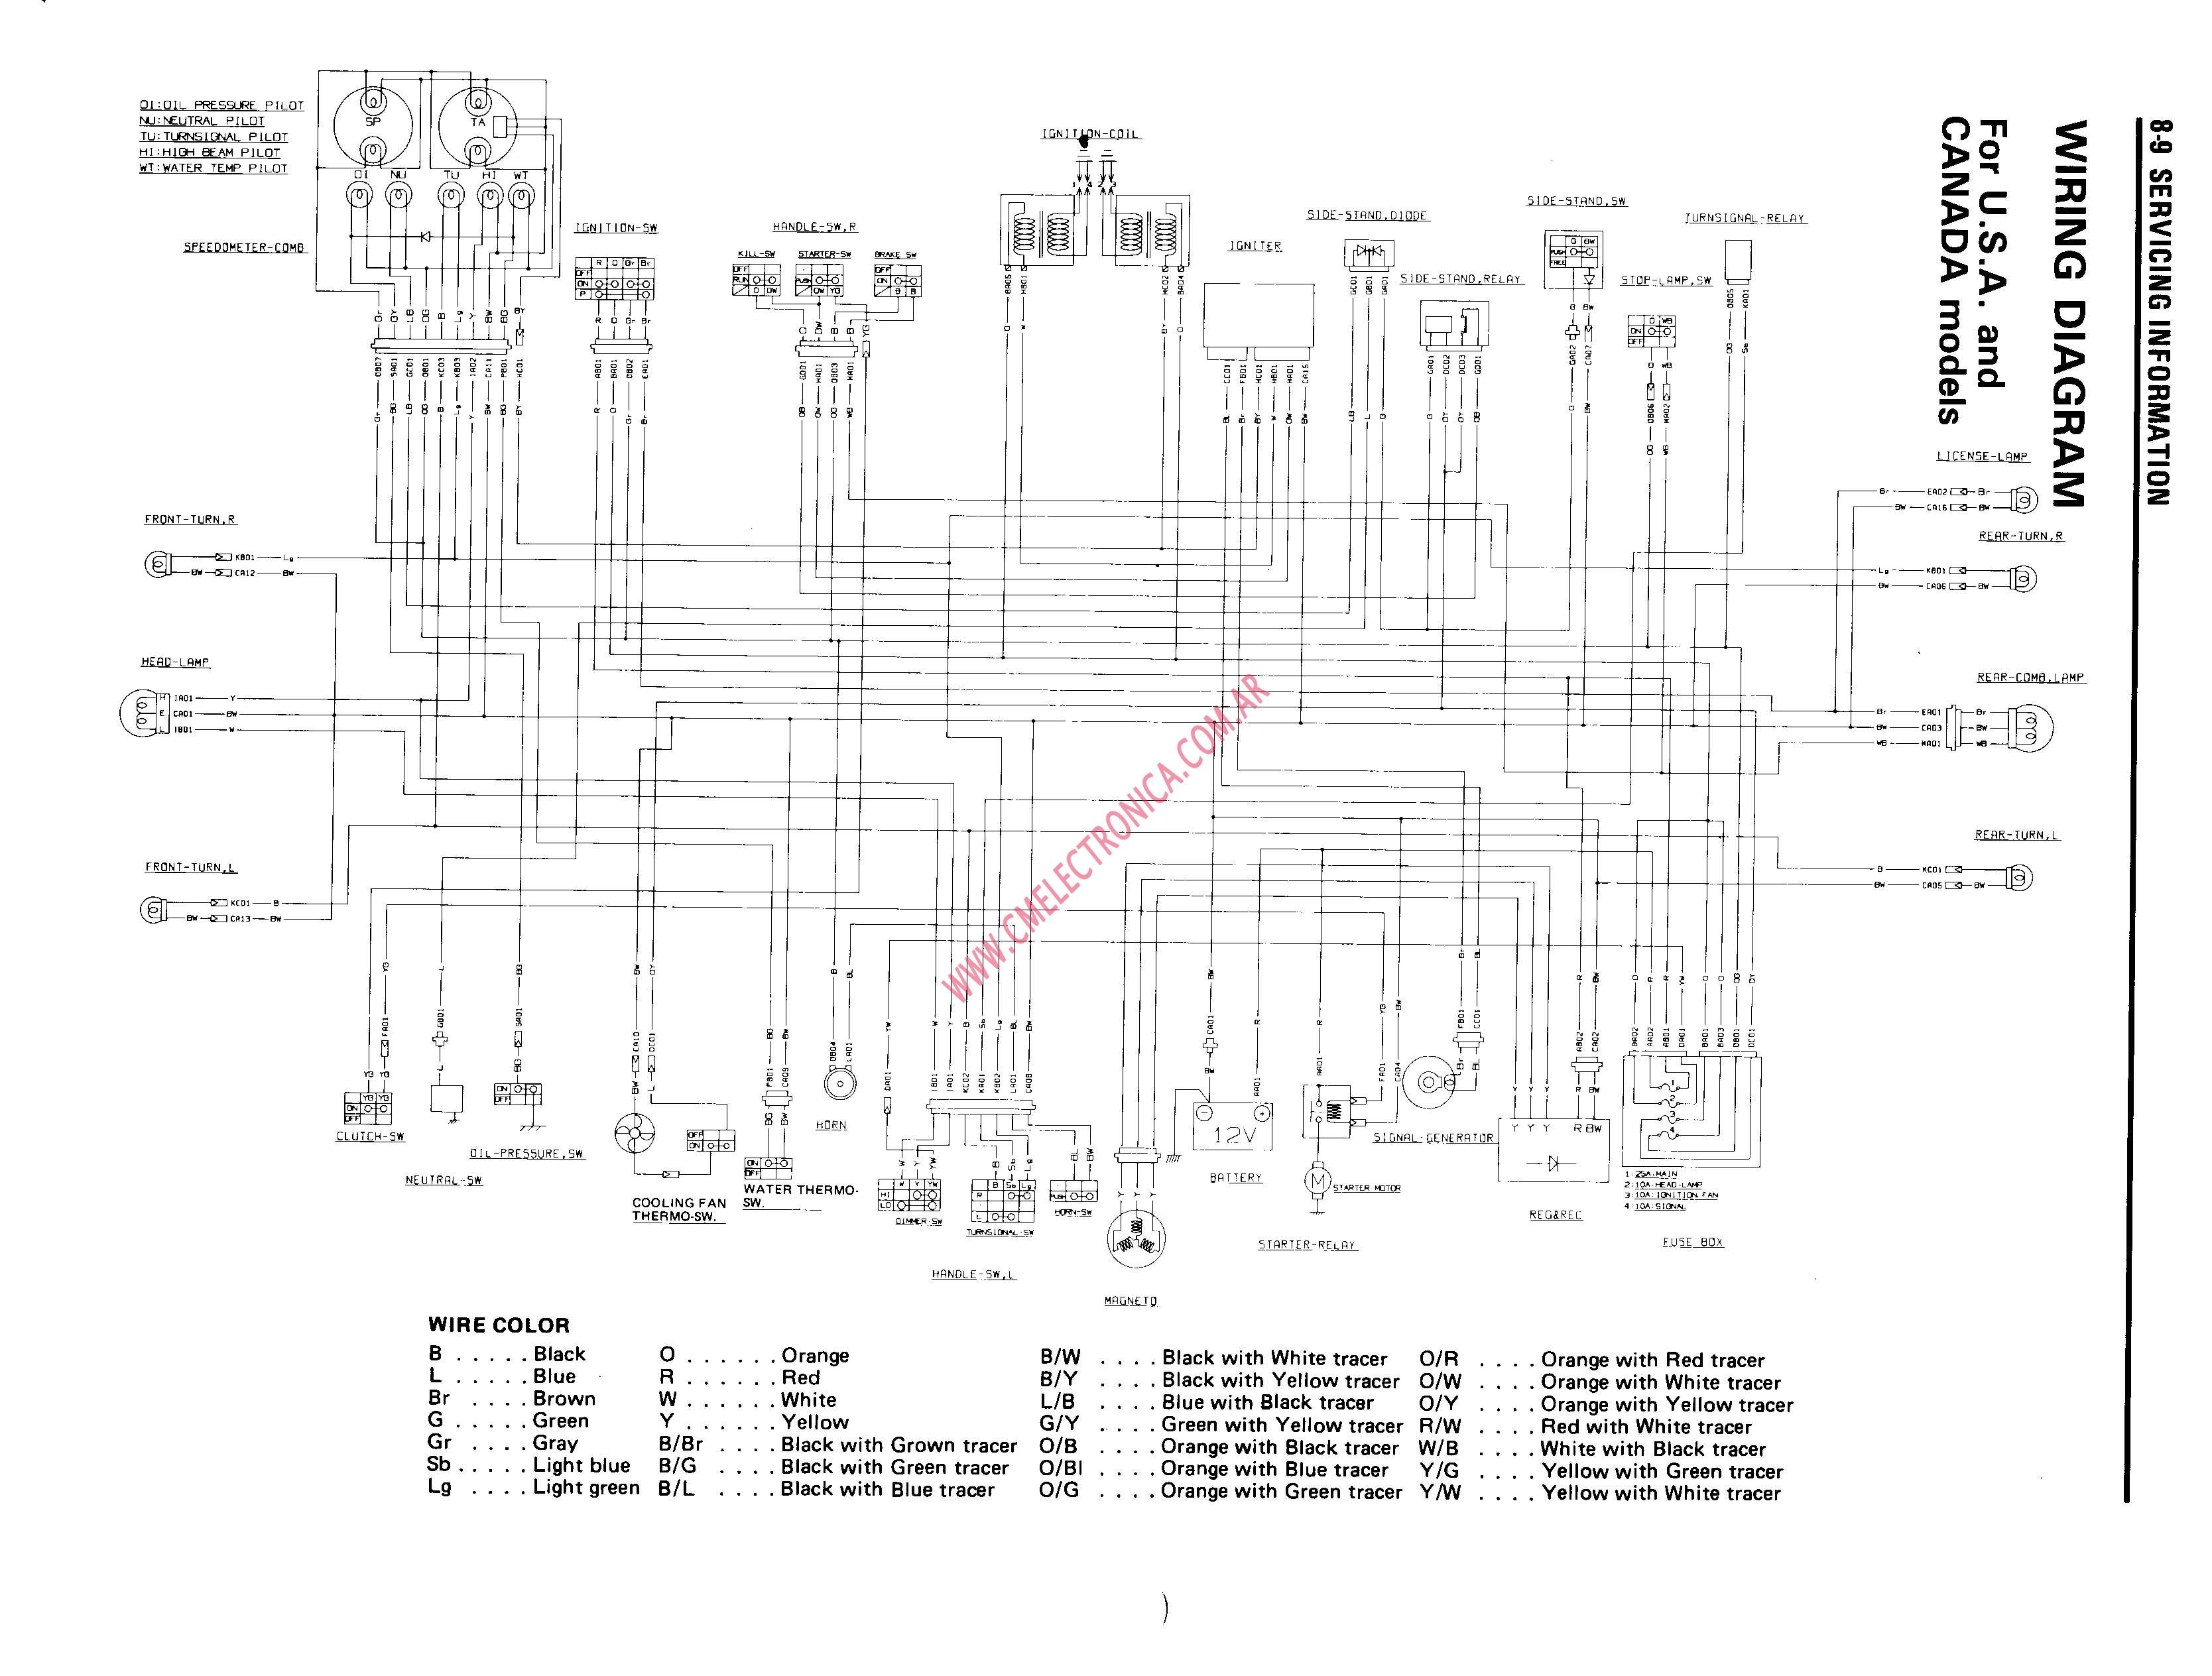 Yamaha kodiak 400 wiring diagram new wiring diagram image yamaha kodiak 400 wiring diagram mastertopforum asfbconference2016 Choice Image